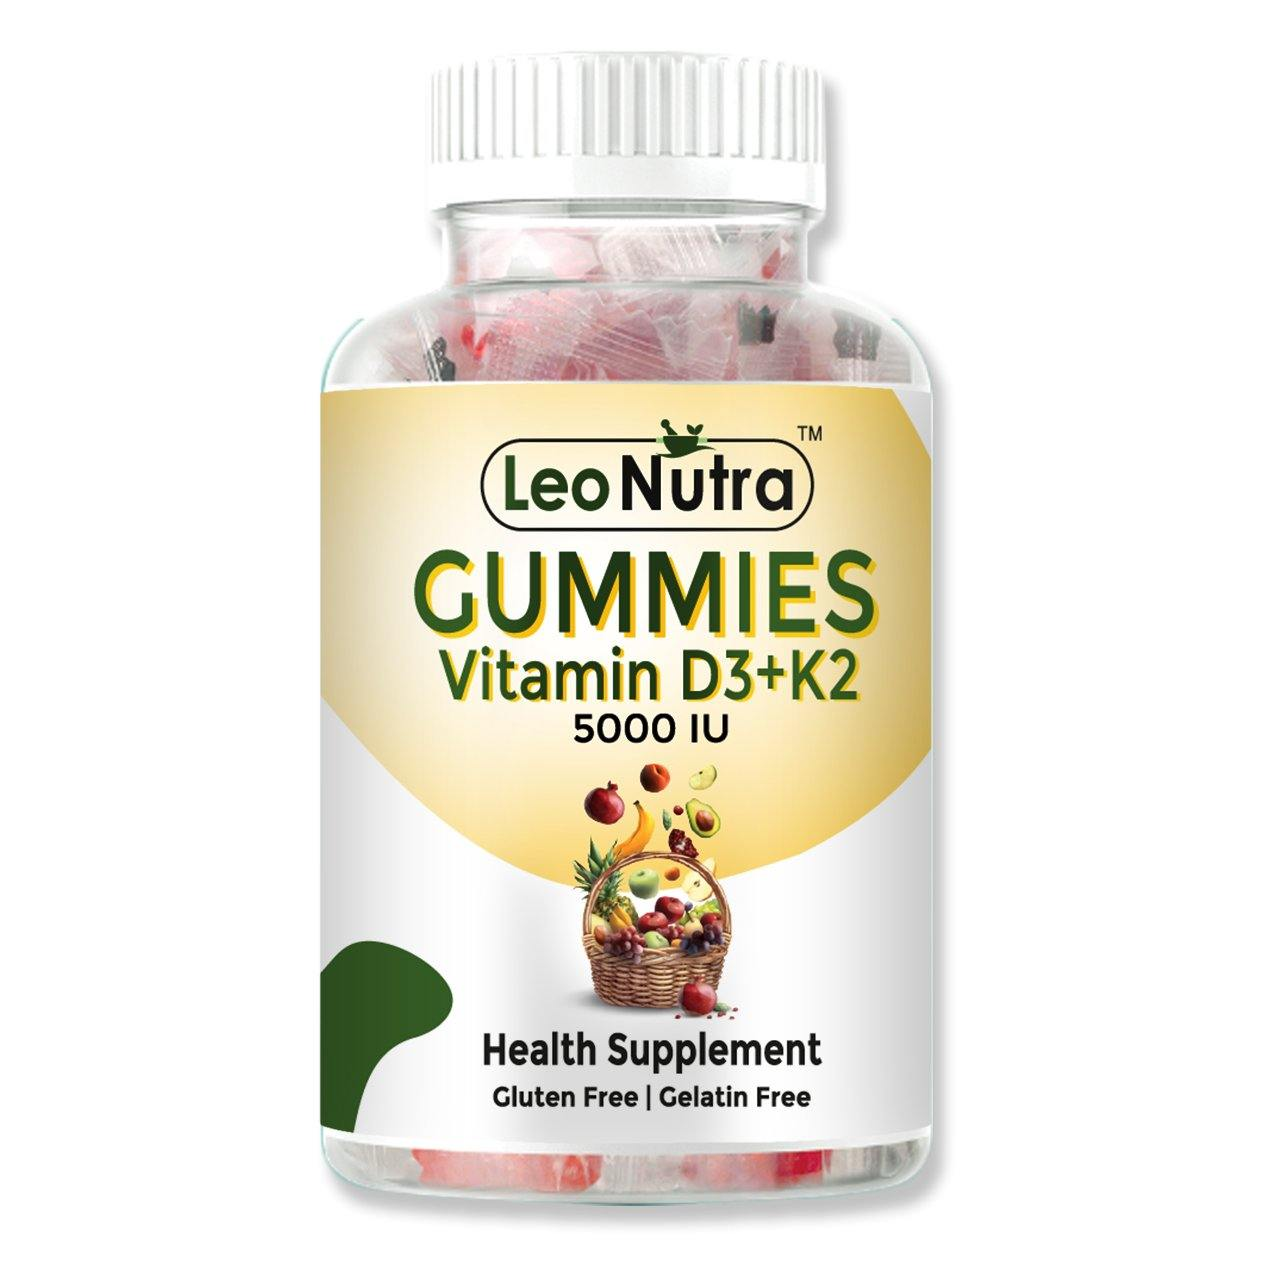 LeoNutra Vitamin D3 K2 Gummies (5000 IU) | For Immunity & Bone Health - 30 Gummies